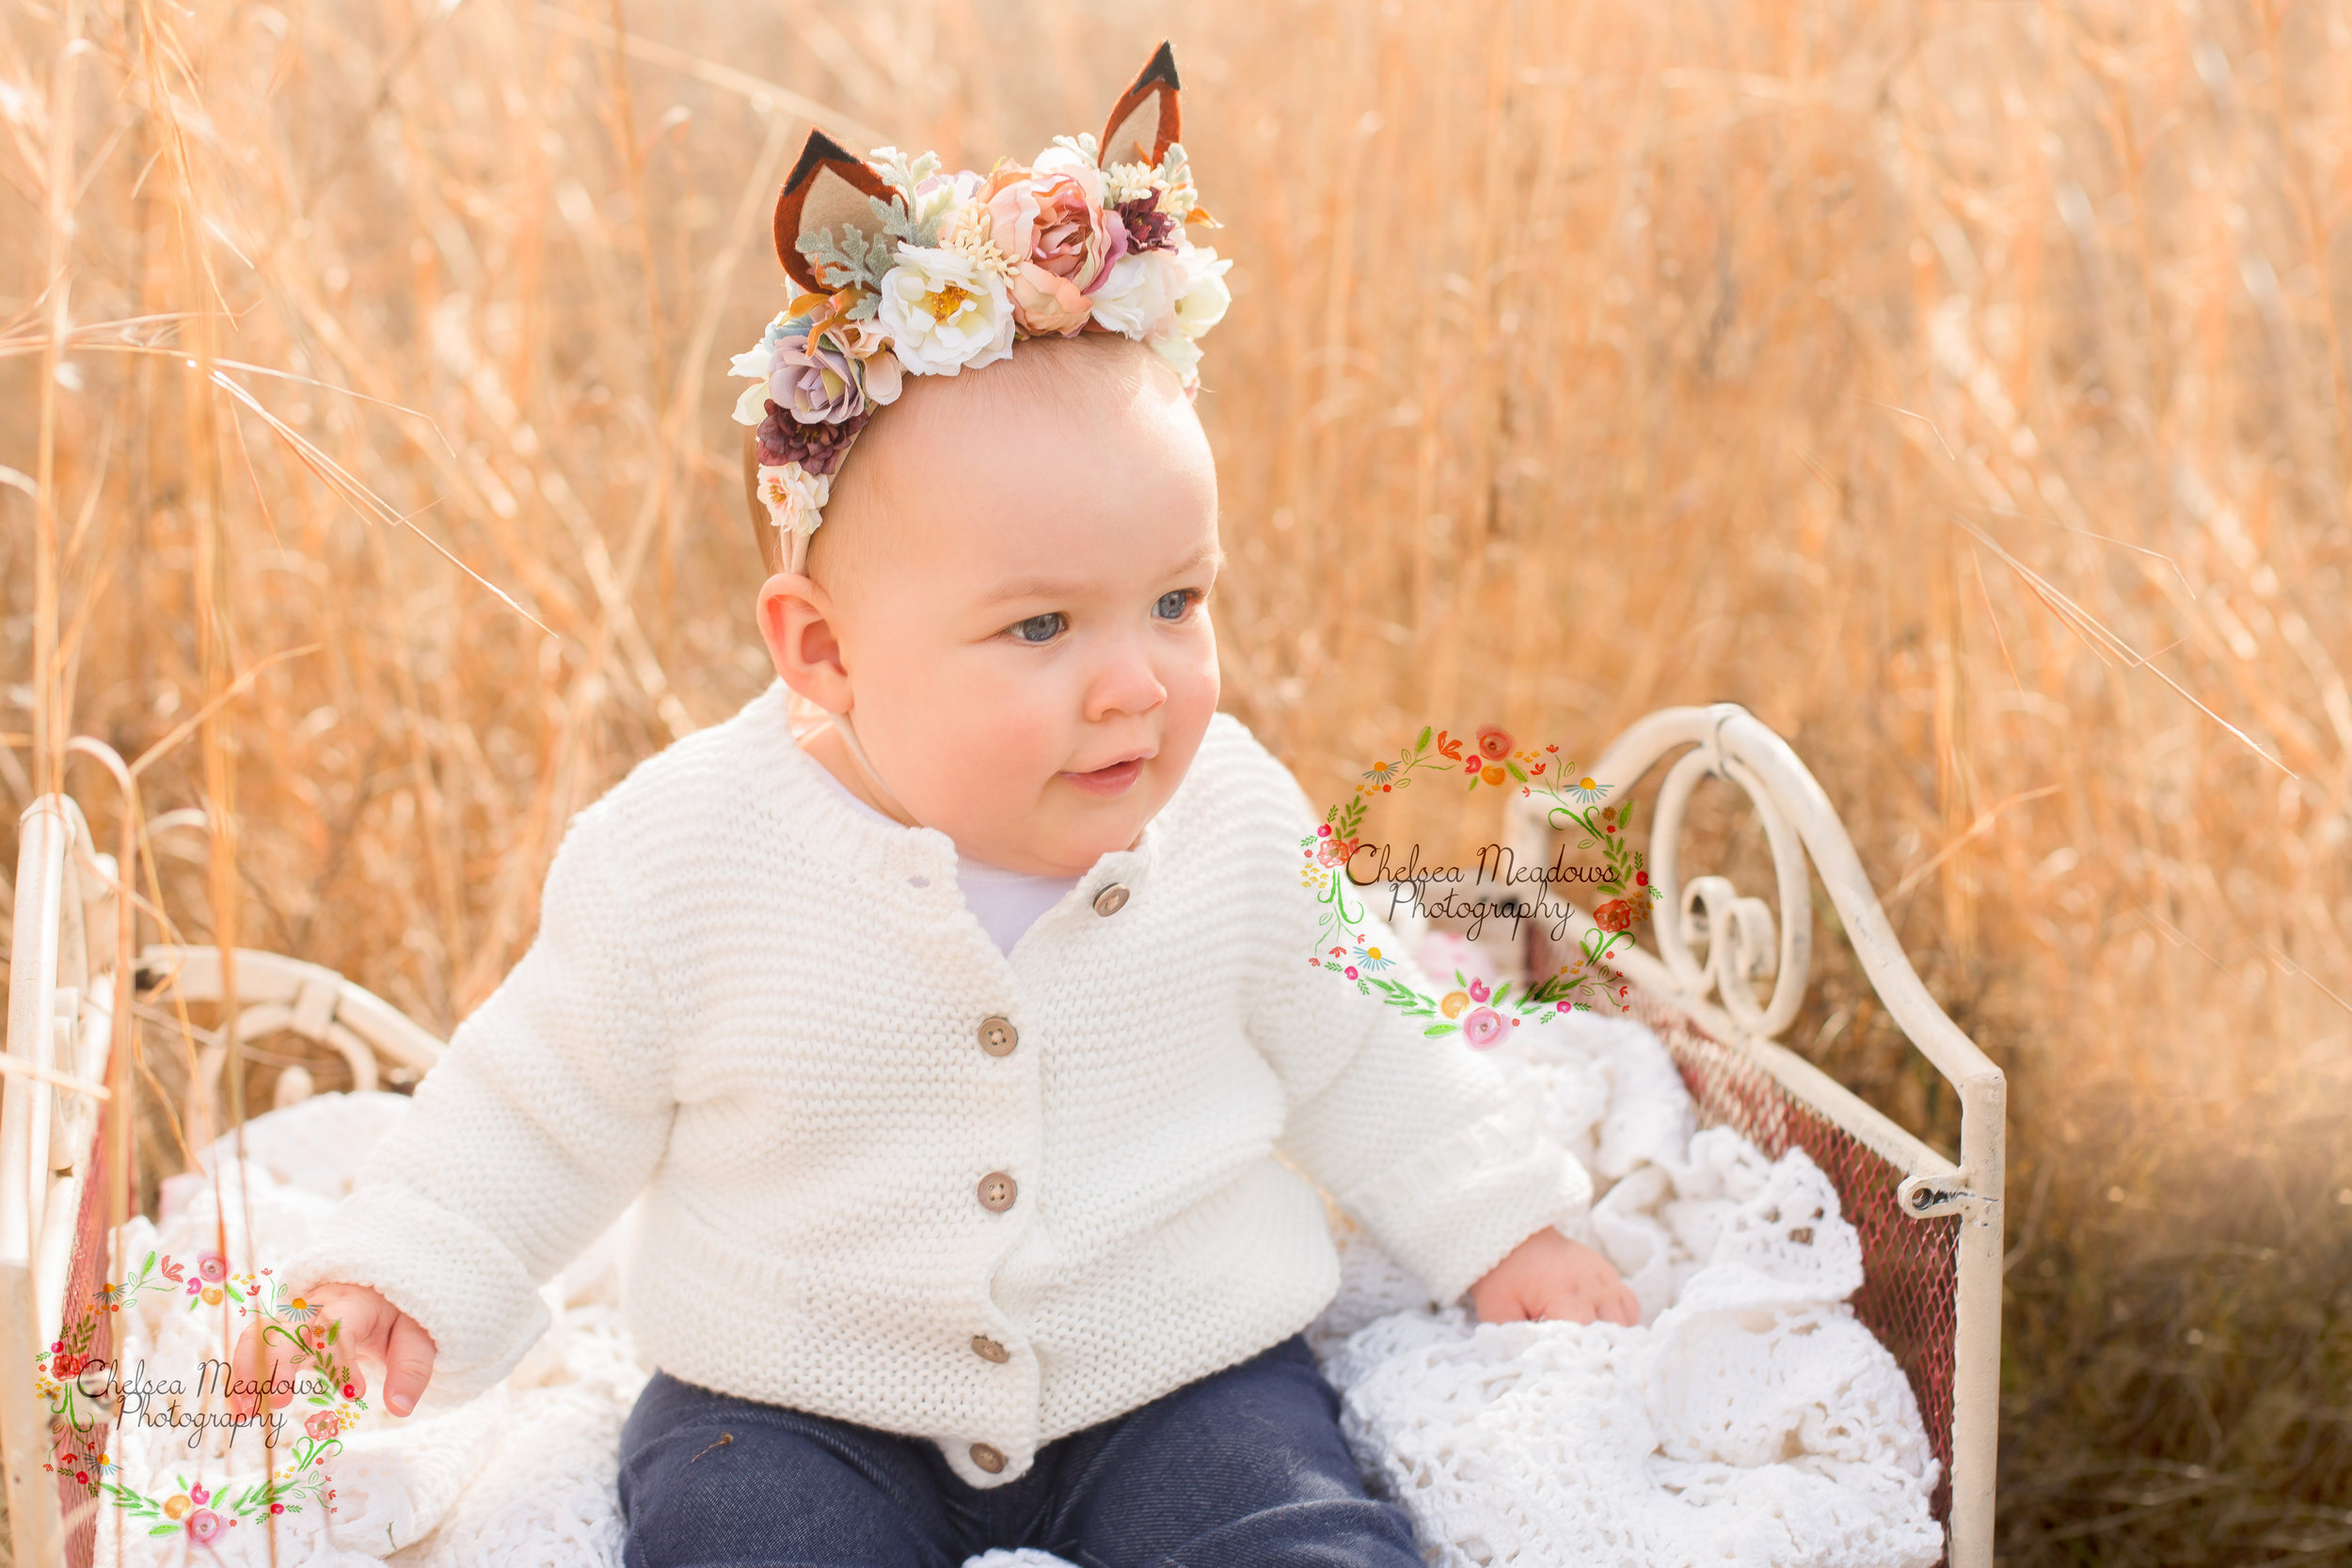 Phina 6 Month Session - Nashville Family Photographer - Chelsea Meadows Photography (30).jpg